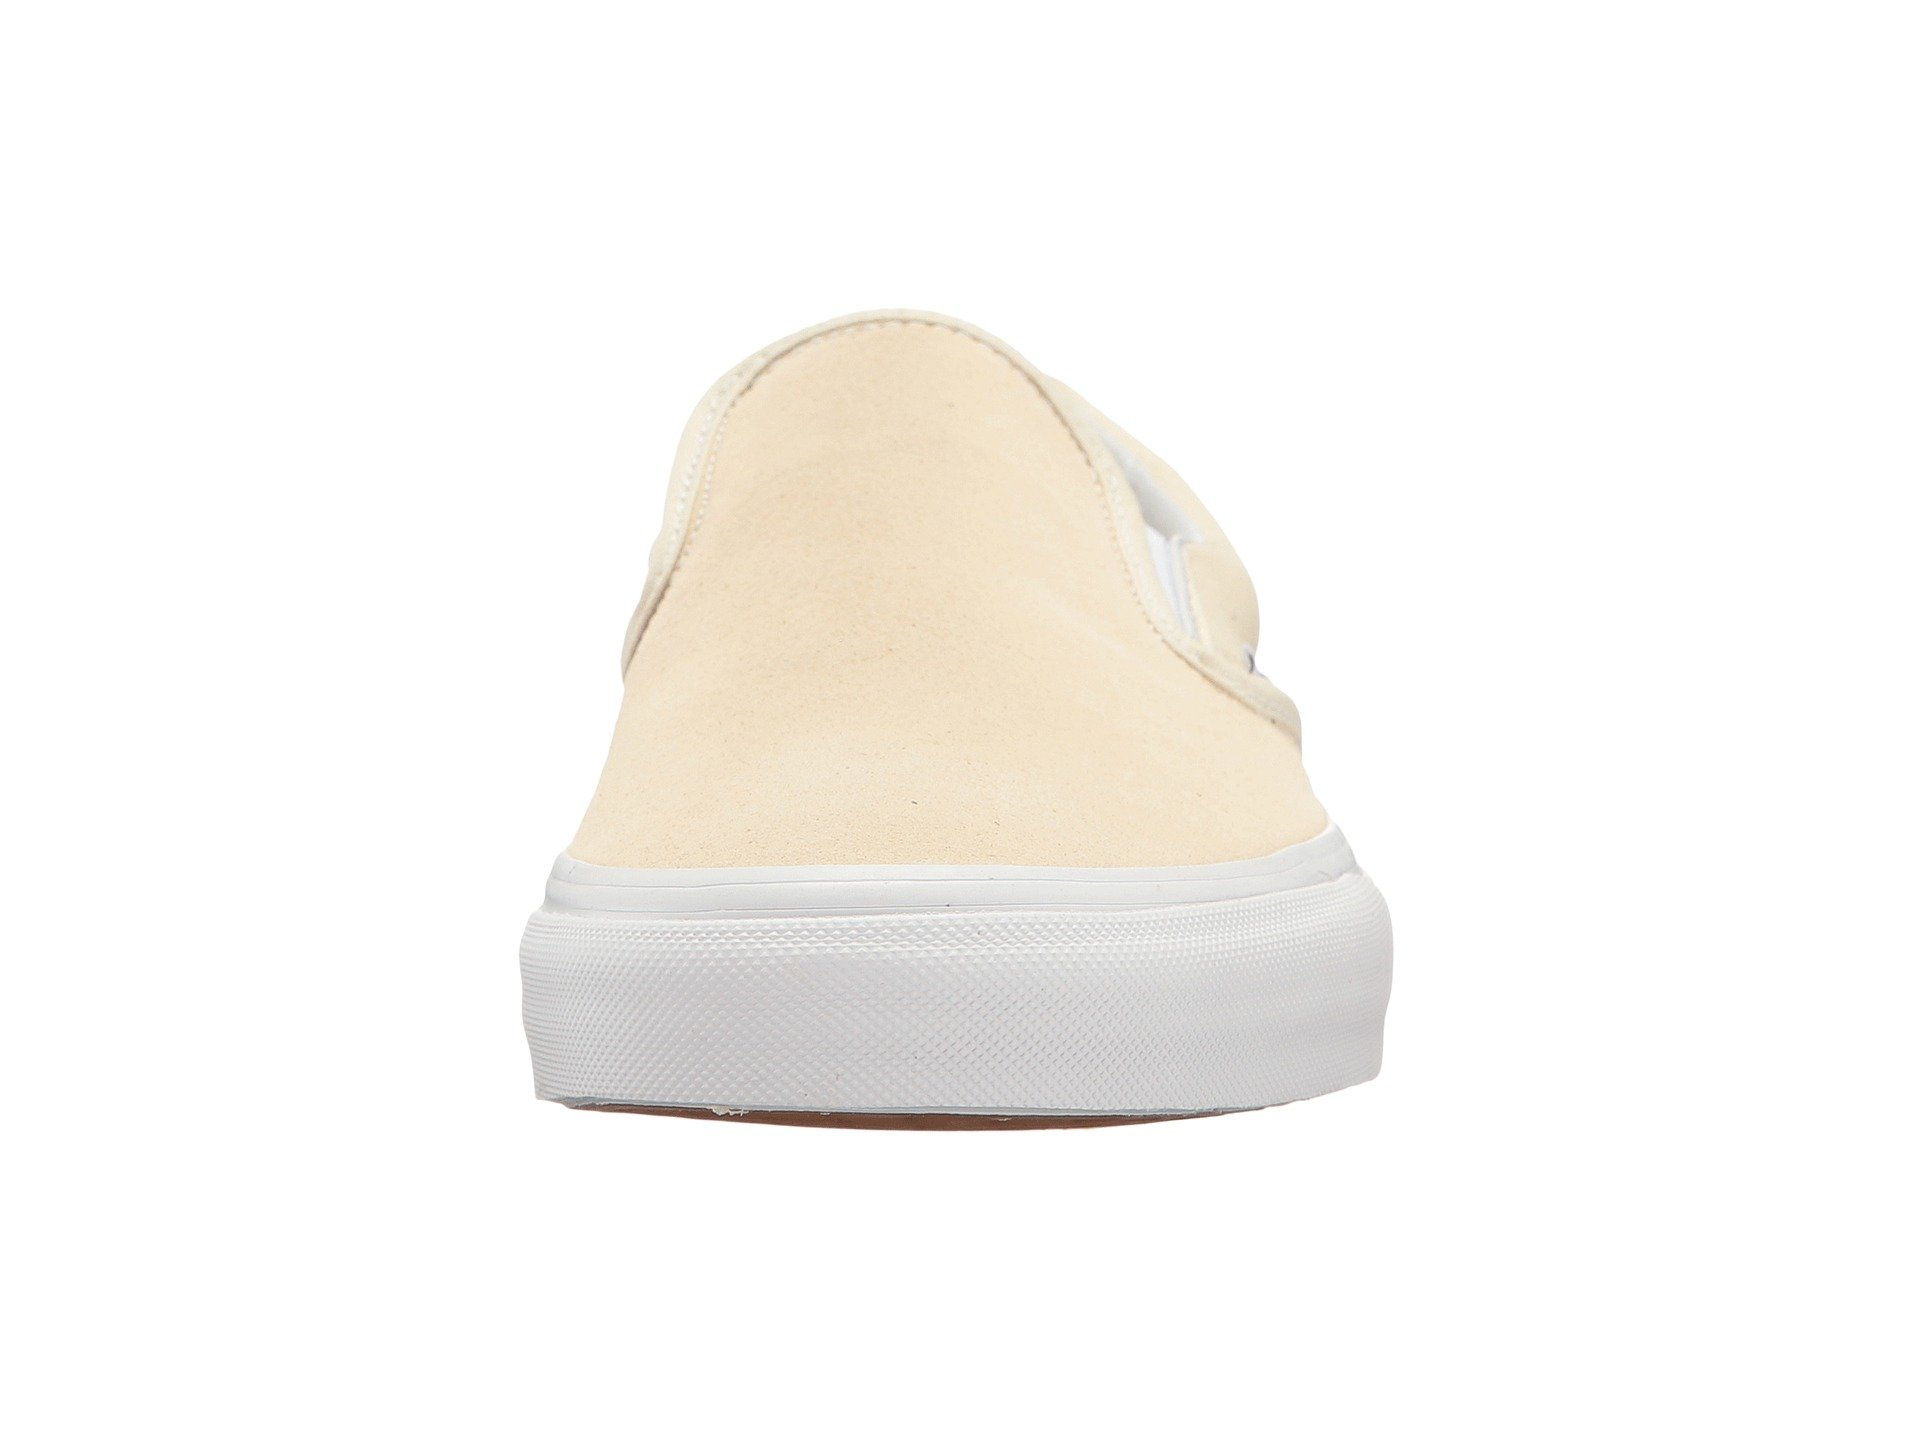 5c3e6bdf2ac Vans - Vans Classic Slip-On Suede And Canvas Afterglow   True White  Skateboarding Shoe - 9.5M 8M - Walmart.com